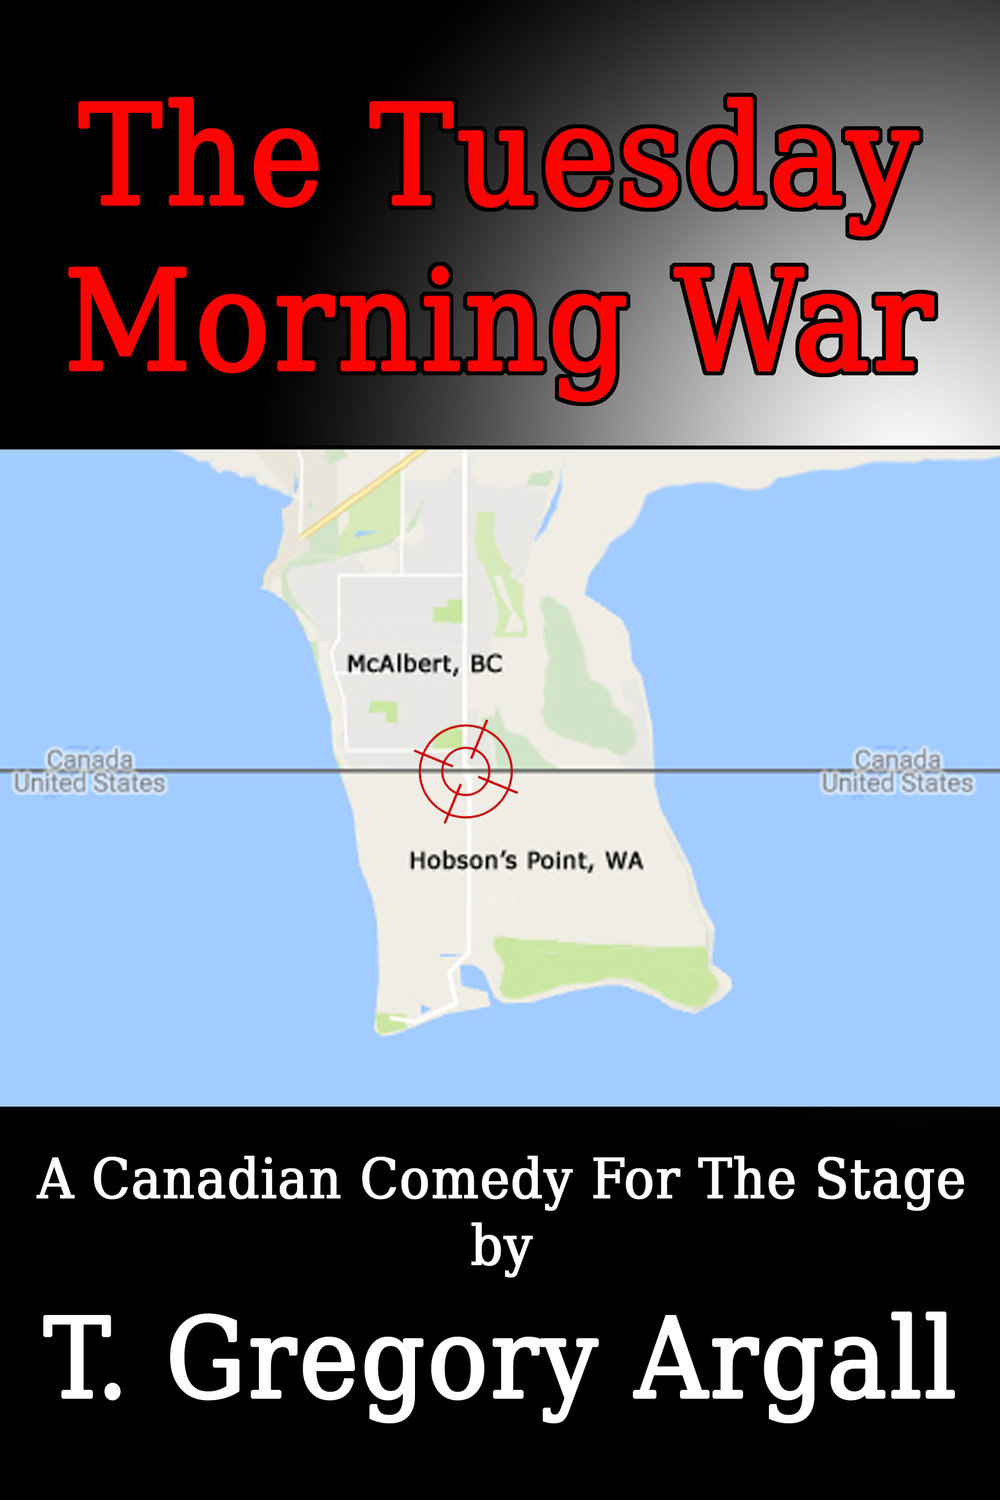 THE TUESDAY MORNING WARWRITTEN BY T. GREGORY ARGALL - From award-winning Canadian playwright, T. Gregory Argall comes a new comedy about borders, buddies, and banter. International tensions rise, leading to an increase in laughter when a border guard mistakenly believes that Canada and the United States are at war. He's determined to protect the single-lane border crossing at the isolated peninsula of Hobson's Point, no matter what his friends north of the 49th parallel think.A very Canadian comedy.Cast: 4 M, 3 FAvailable from Amazon.